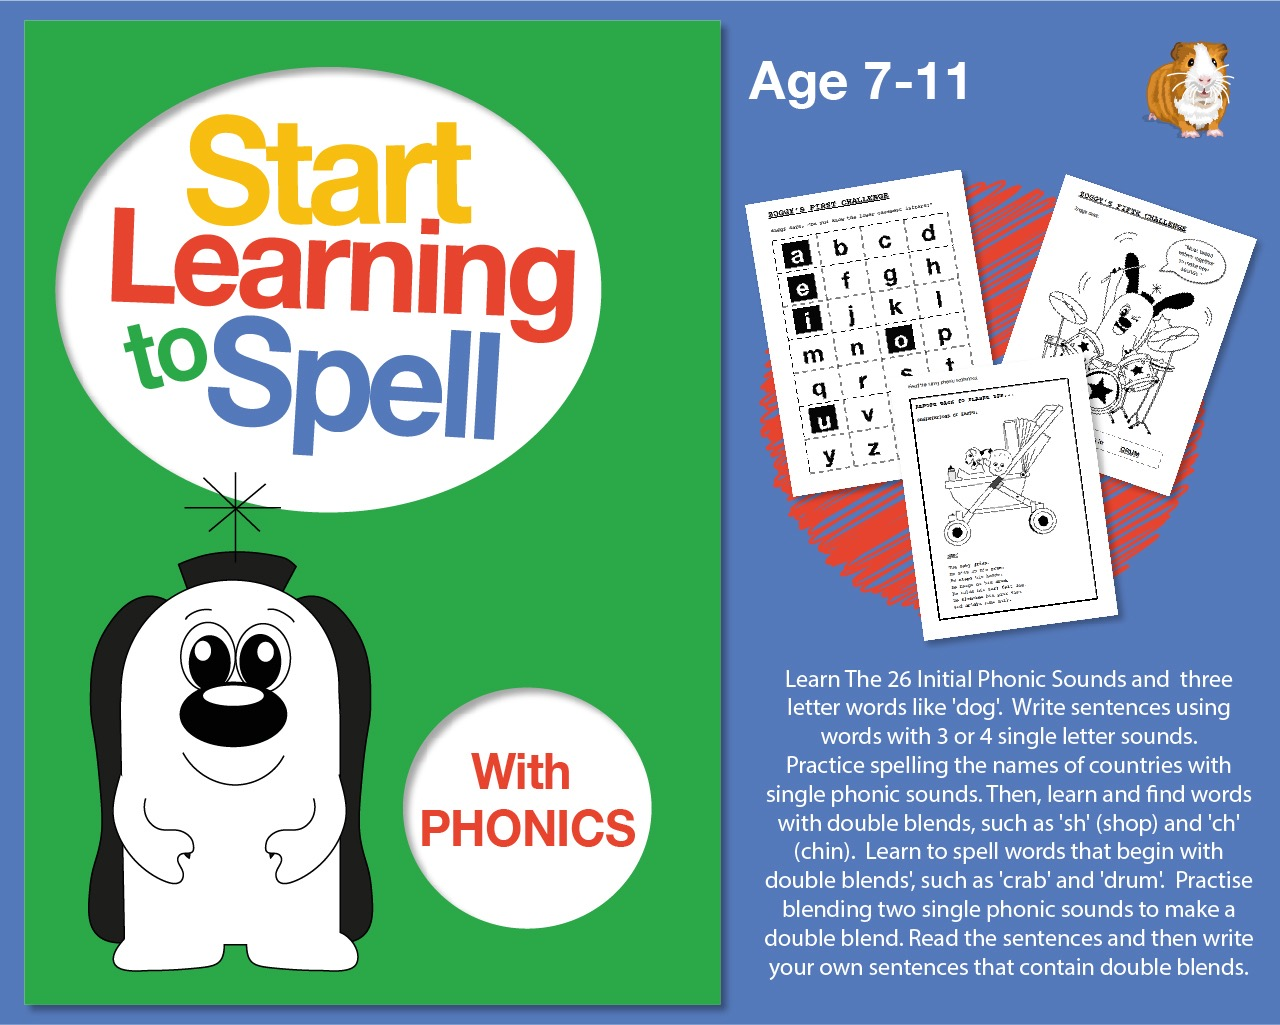 Start Learning To Spell With Phonics (7-11 years)